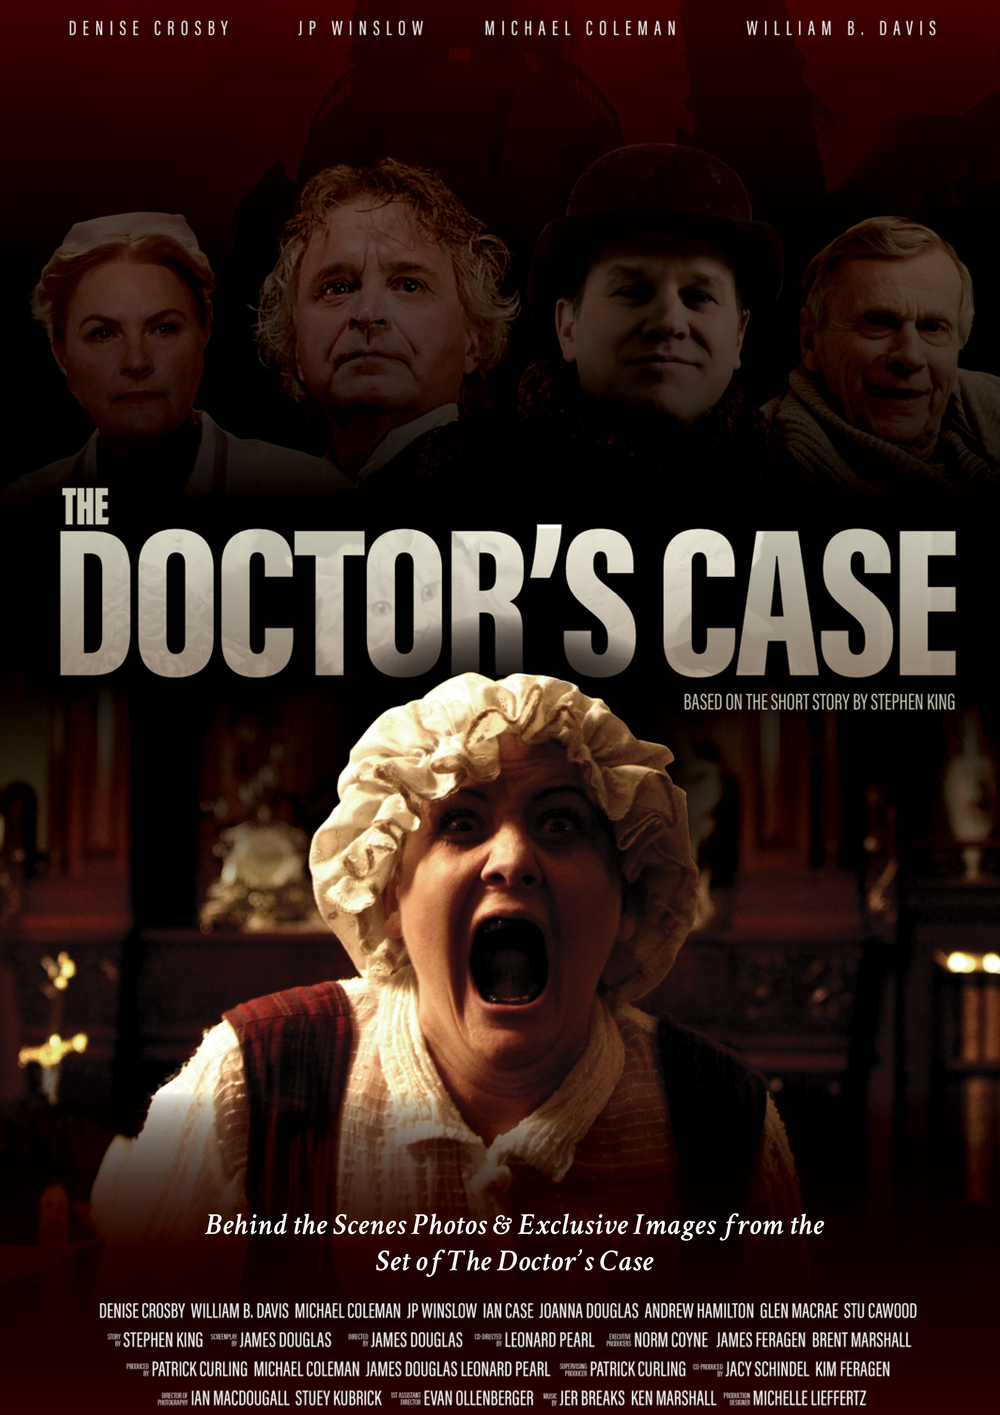 The Doctor's Case Magazine